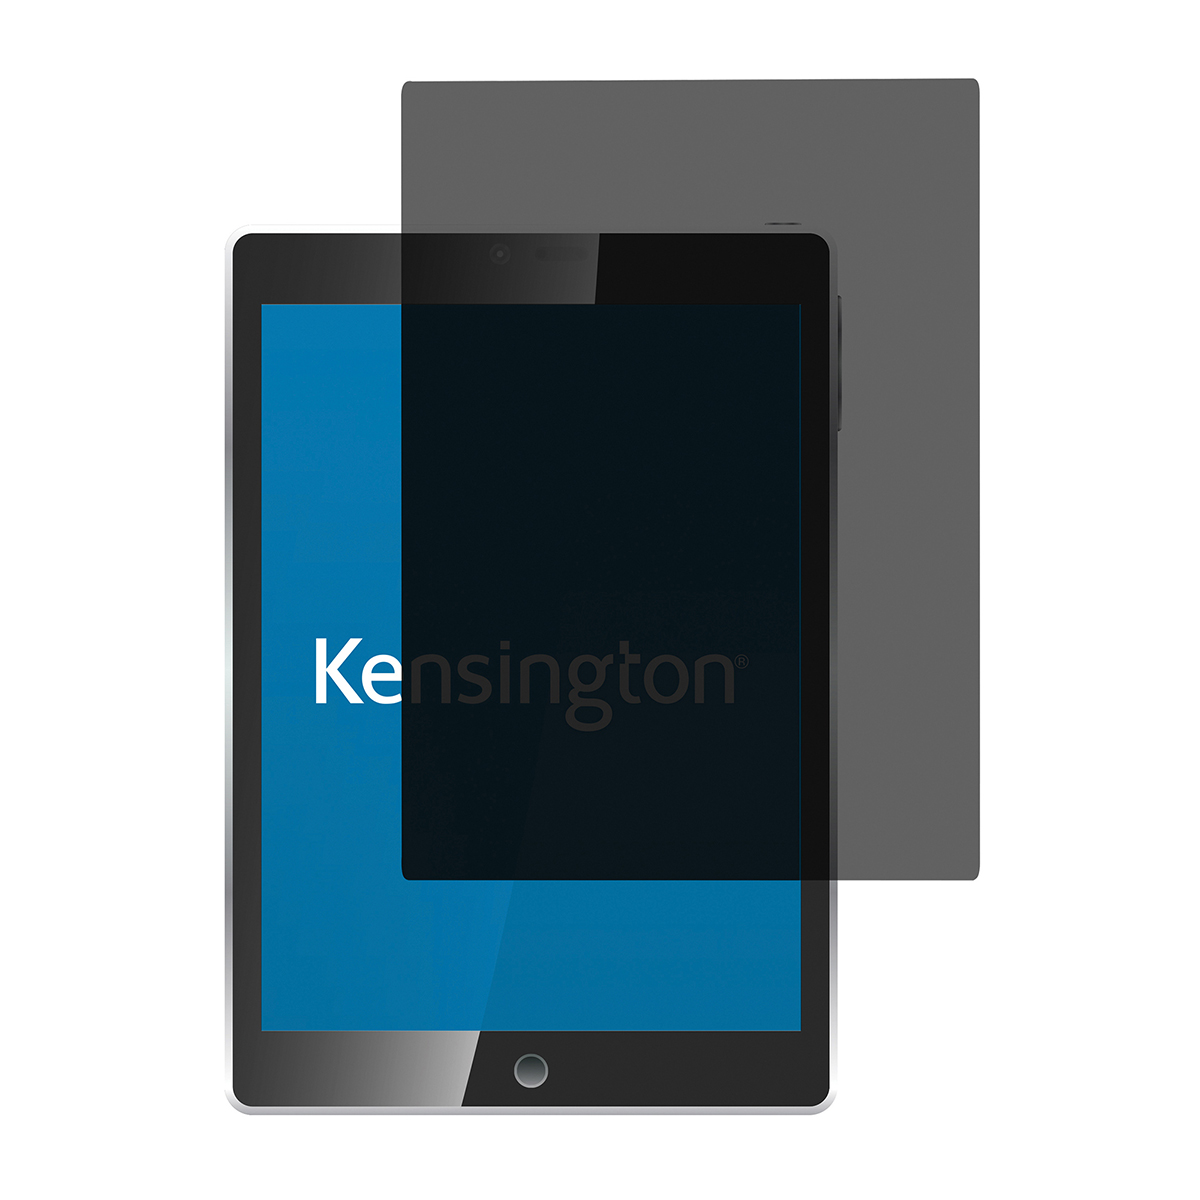 Kensington 626404 Privacy Filter 4 Way Adhesive for iPad Pro 12.9 Inch 2017